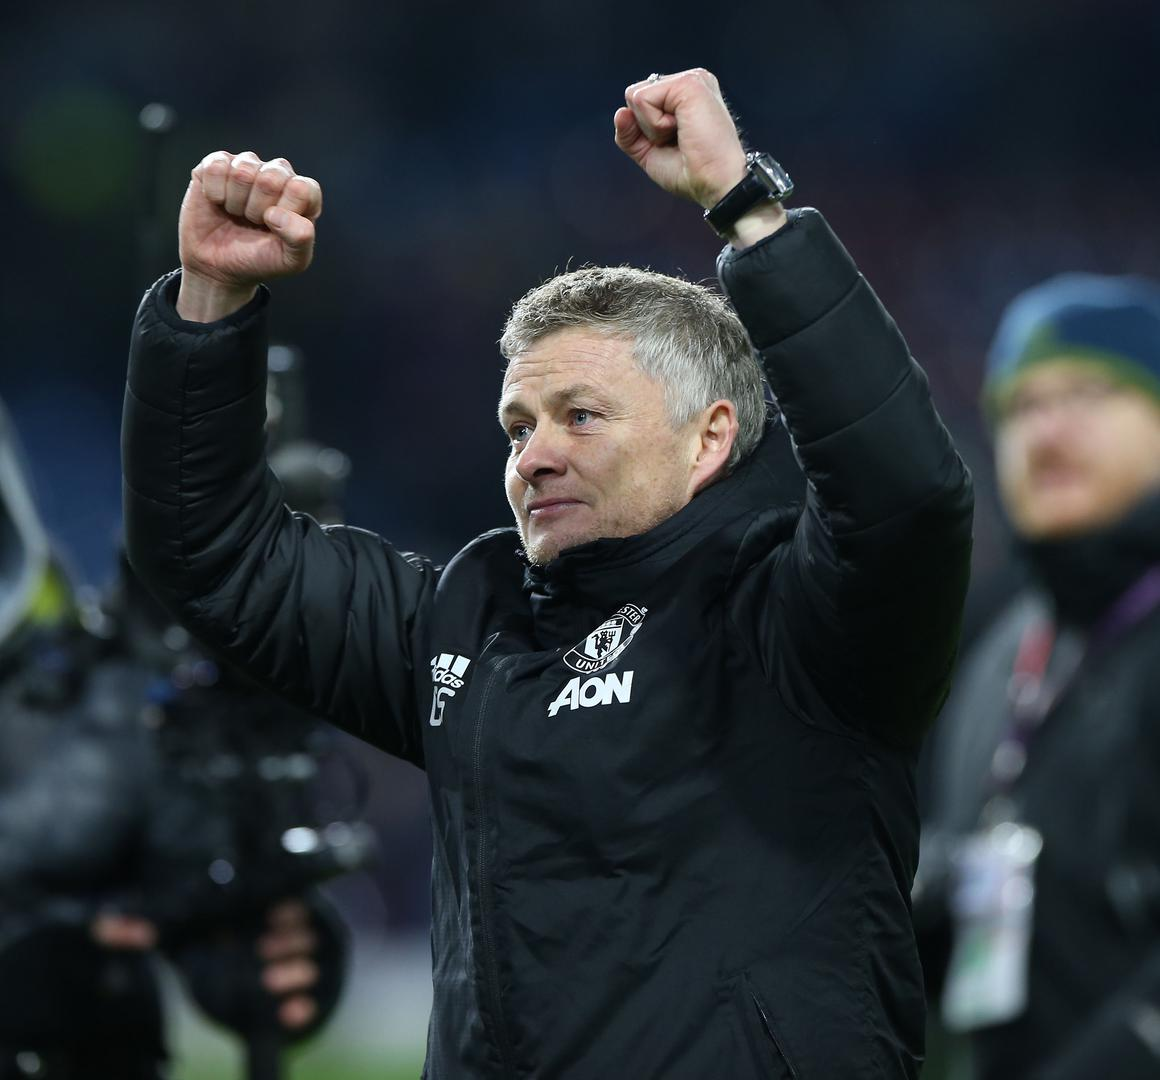 Ole Gunnar Solskjaer celebrates Manchester United's win over Burnley at Turf Moor